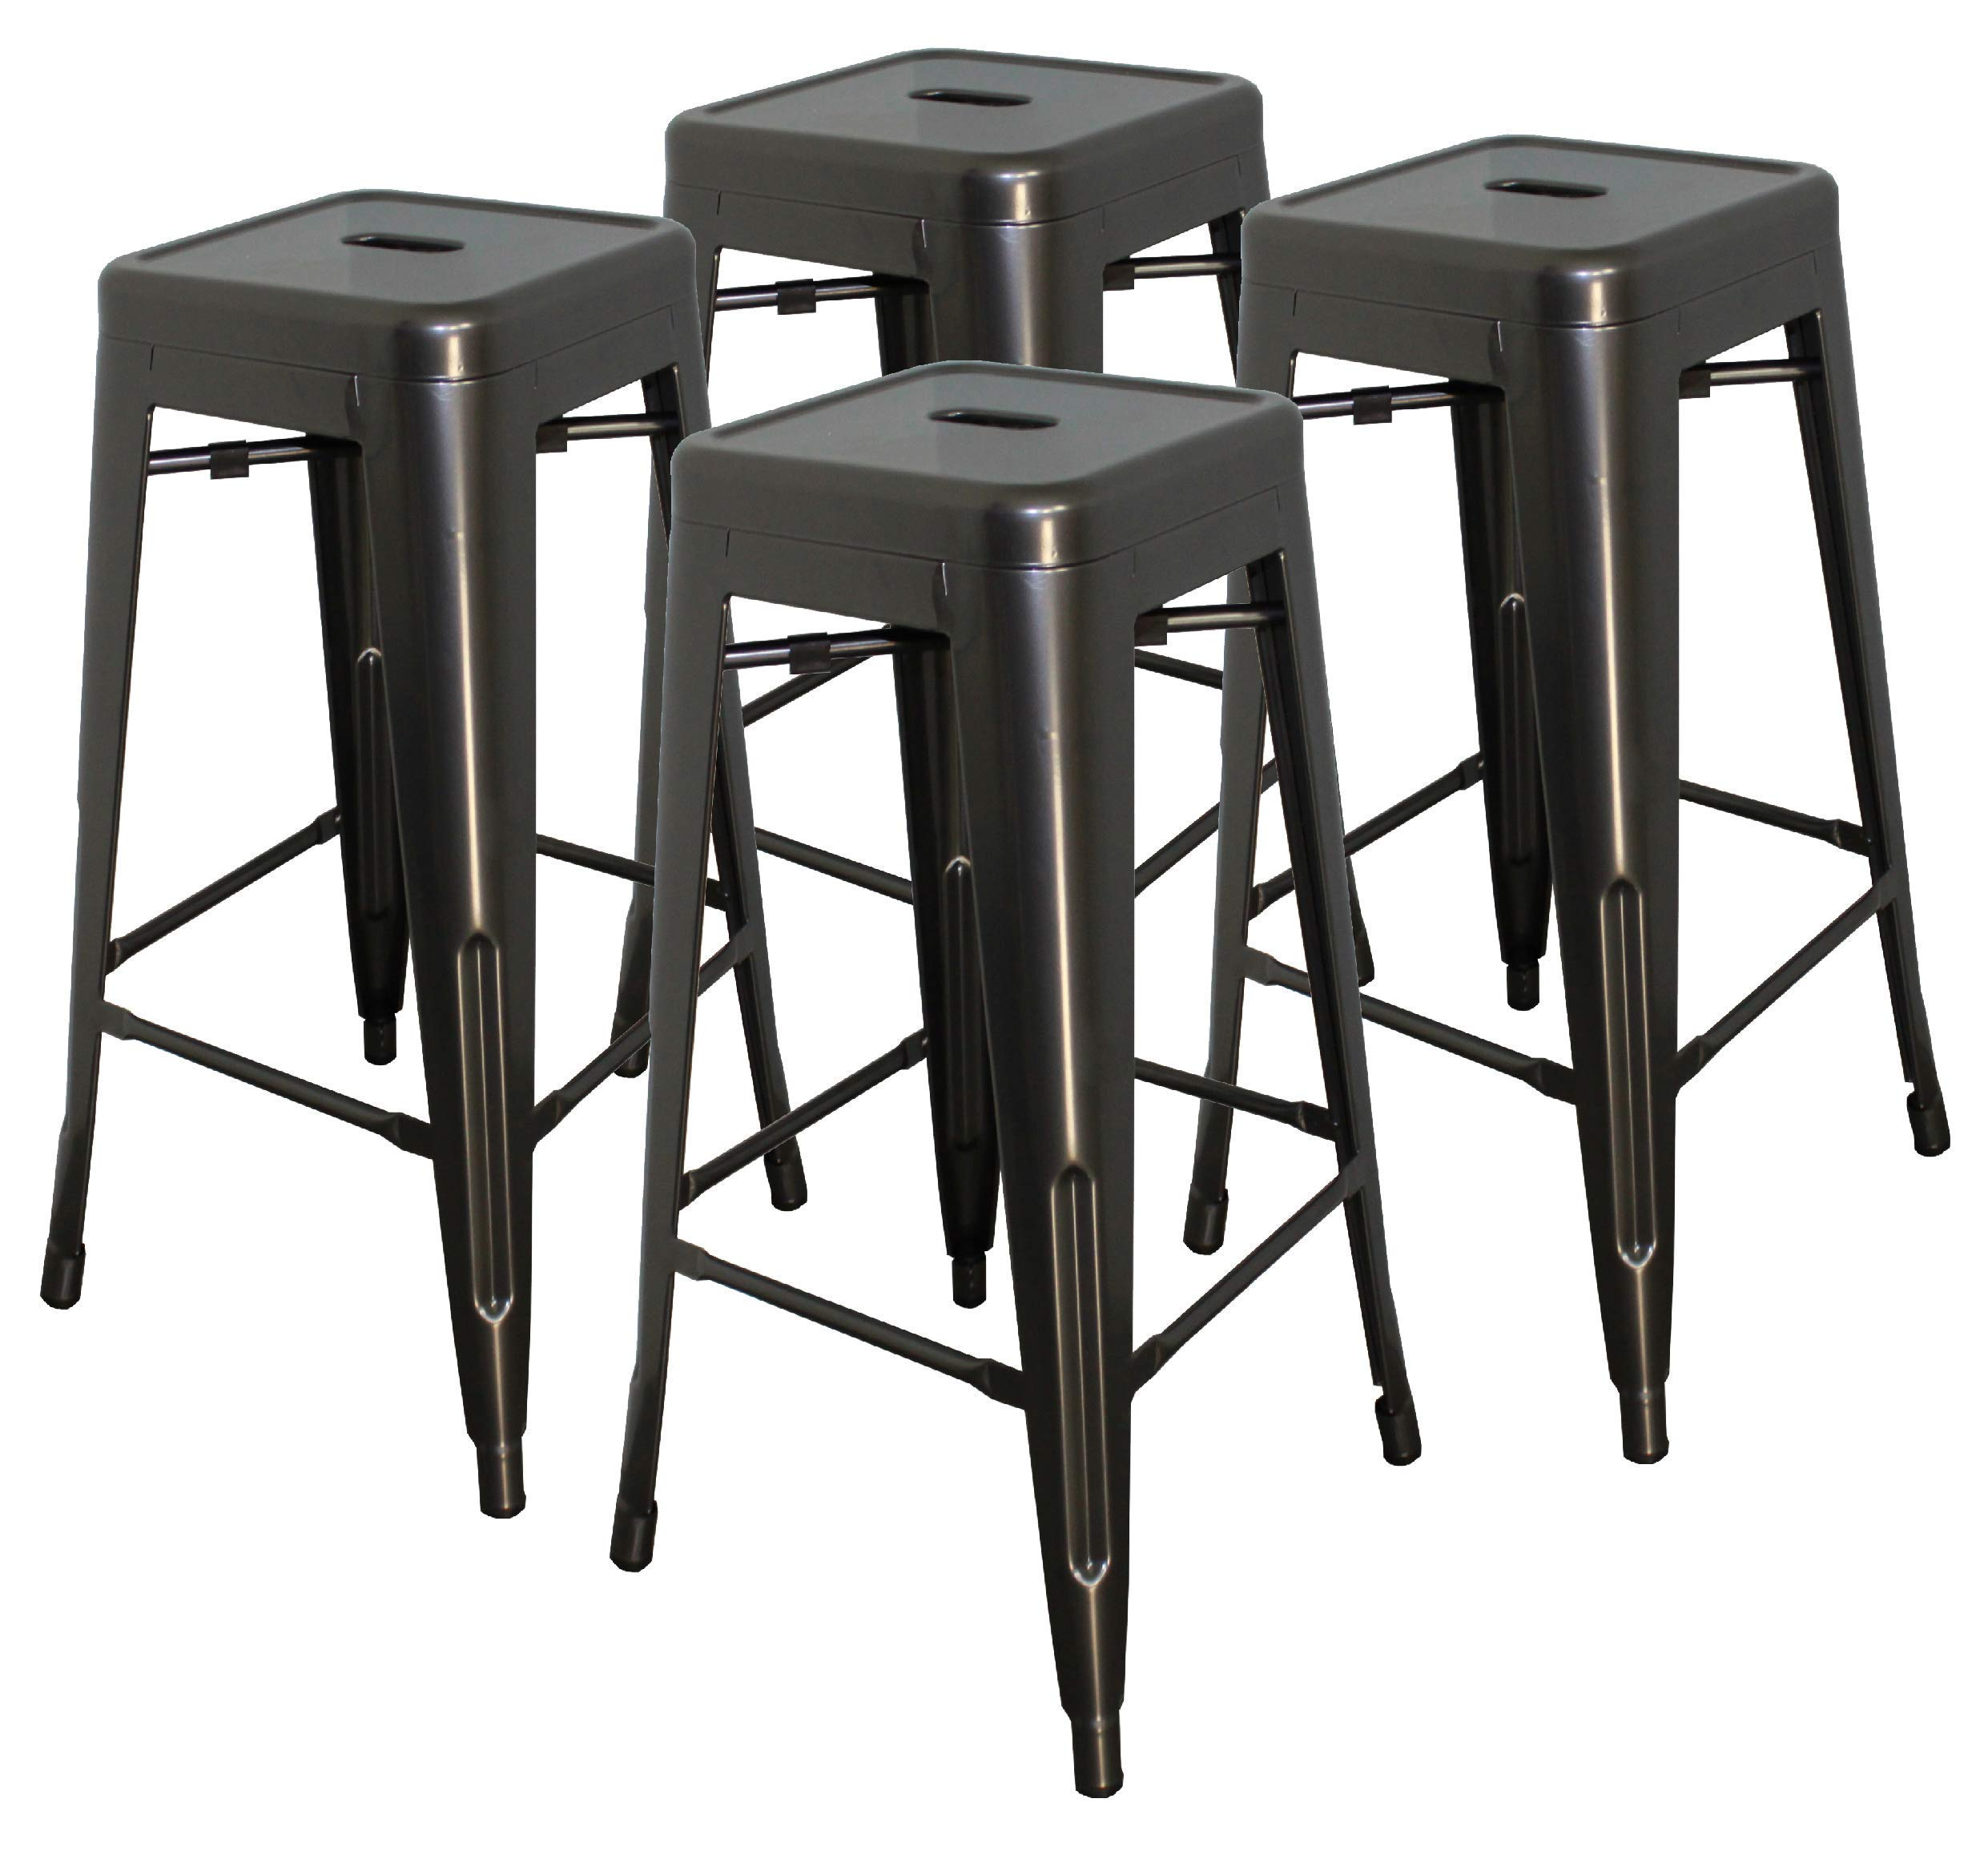 Hercke 30'' Stacking Metal Bar Stool (4 Pack) Steel - Gunmetal Gray - Kitchen Island Counter Industrial Indoor Outdoor Backless Chair | by SafeRacks (30'') by Hercke